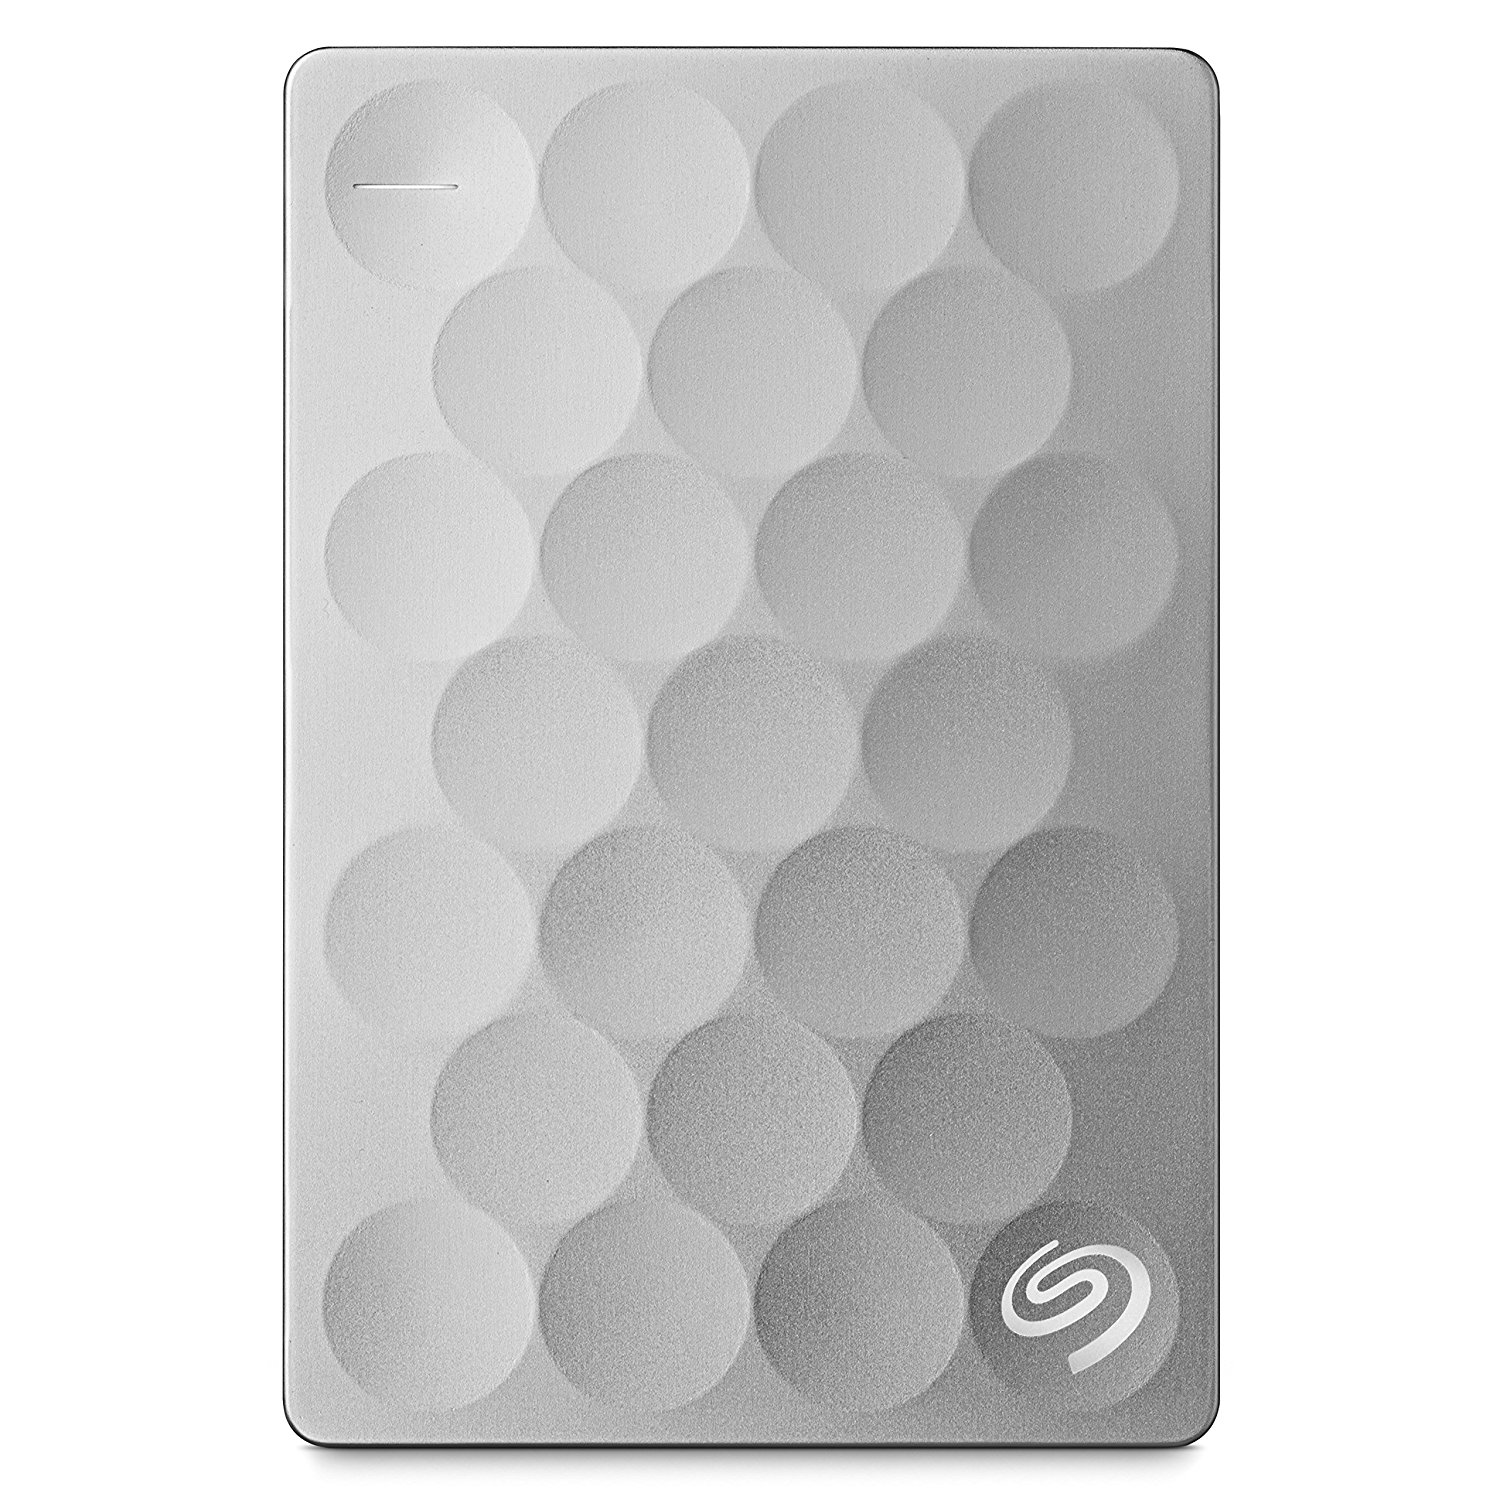 Hard Disk Extern Seagate Backup Plus Ultra Slim 1TB USB 3.0 Platinium